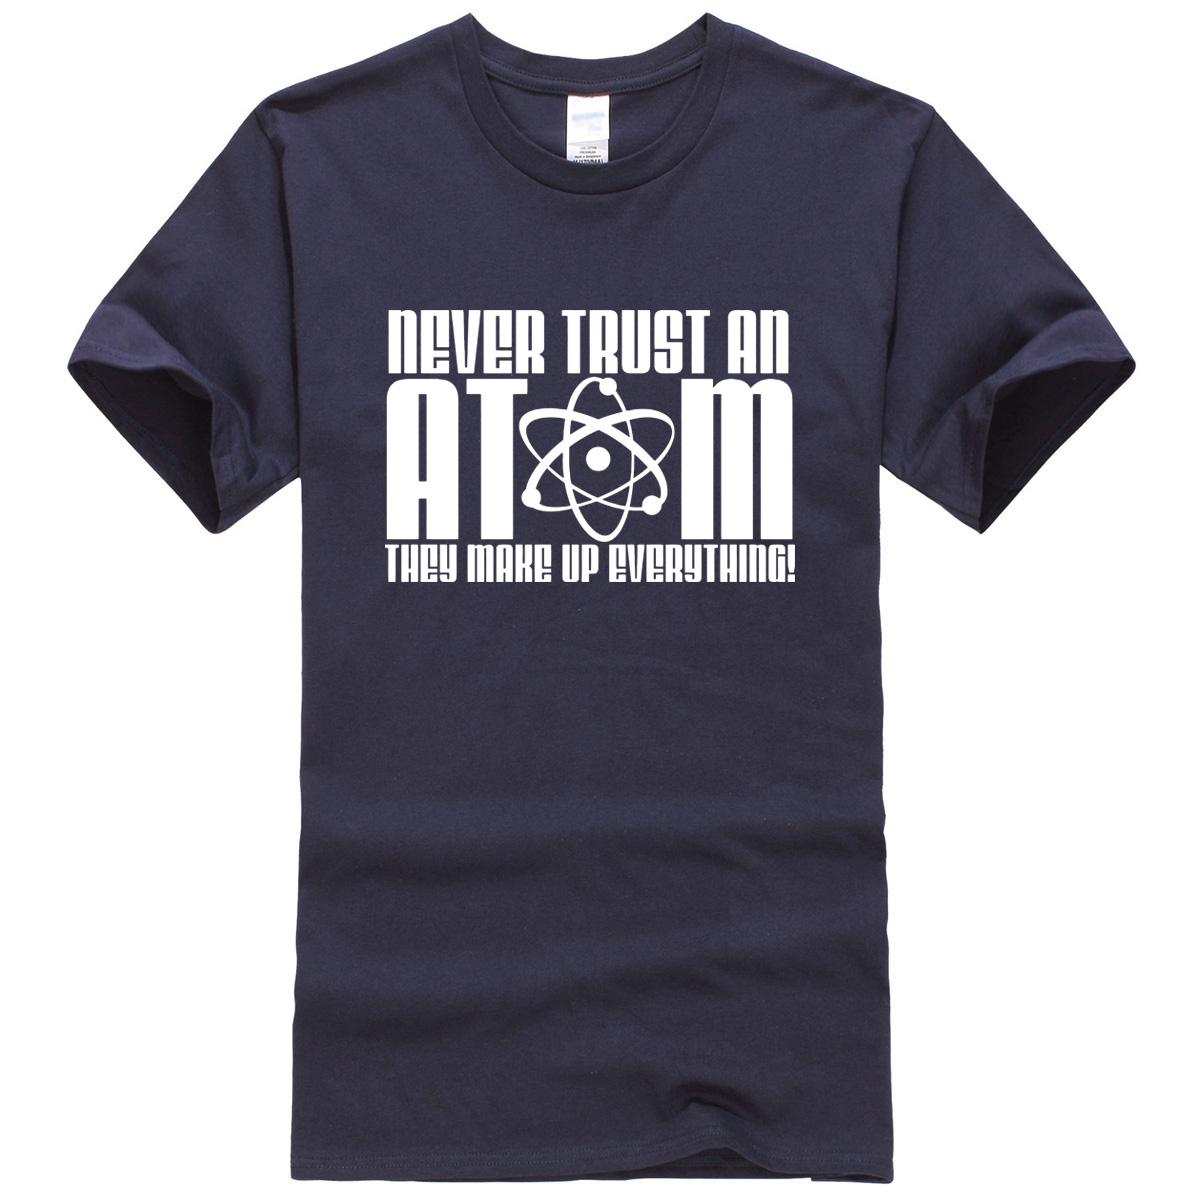 2019 T-shirt summer men' s T-Shirts Never Trust an Atom letter printed brand clothing crossfit kpop hip hop free shipping tops